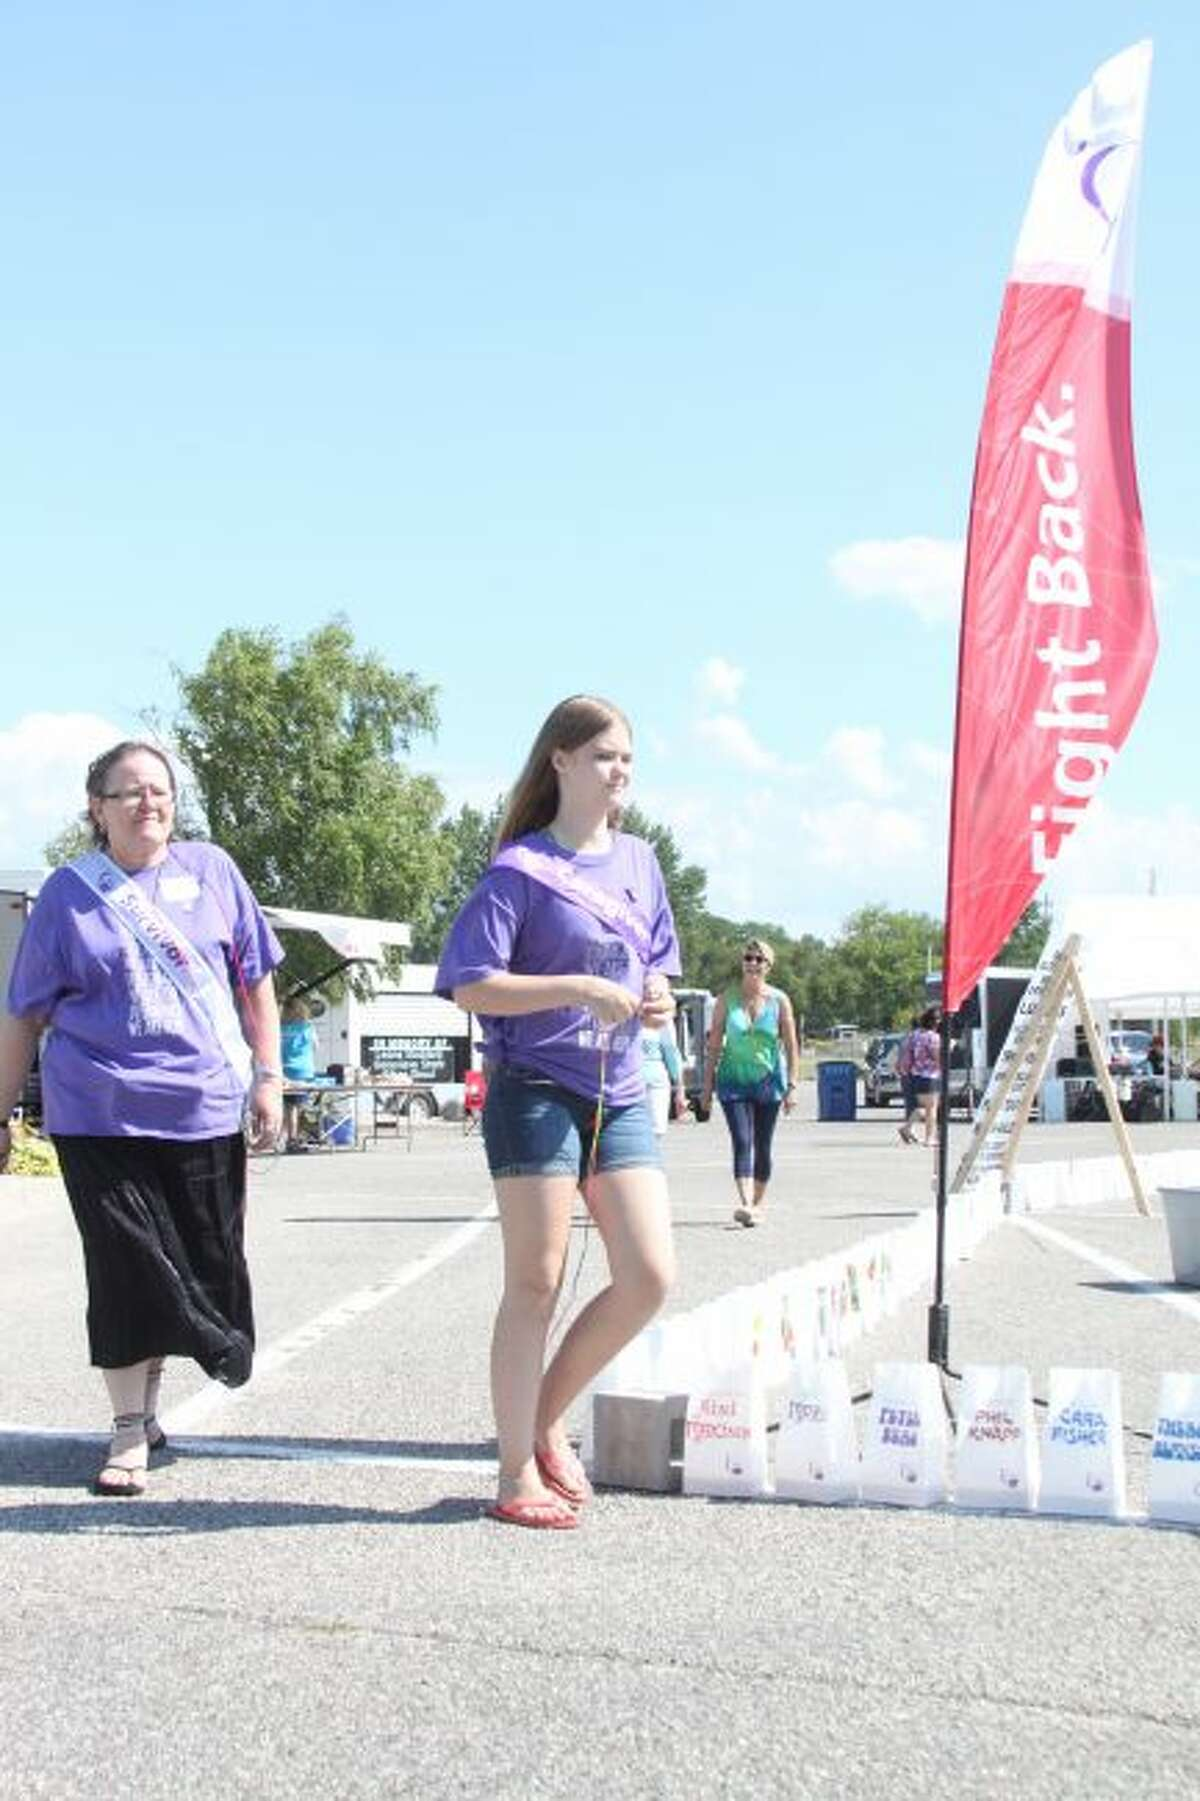 The Manistee County Relay for Life was held at First Street Beach in 2017, and people of all ages took part in the activities. This year's event is slated for Saturday at Manistee High School. (News Advocate File Photo)